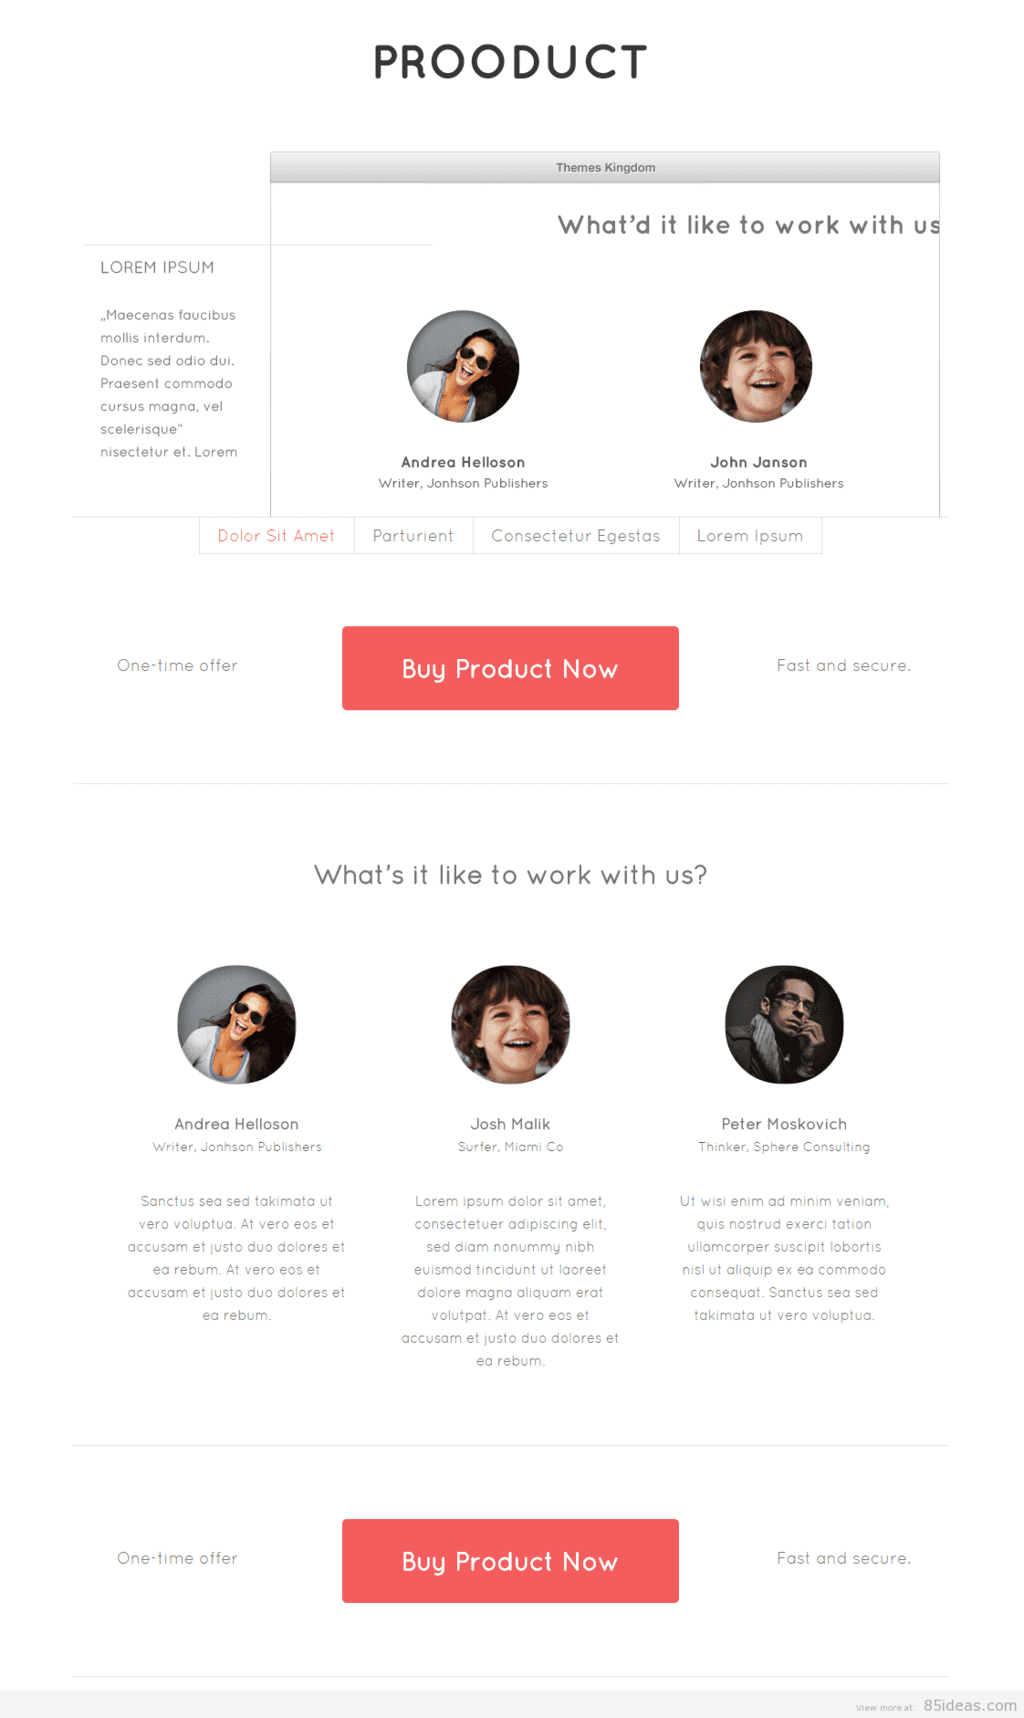 Prooduct theme by themeskingdom